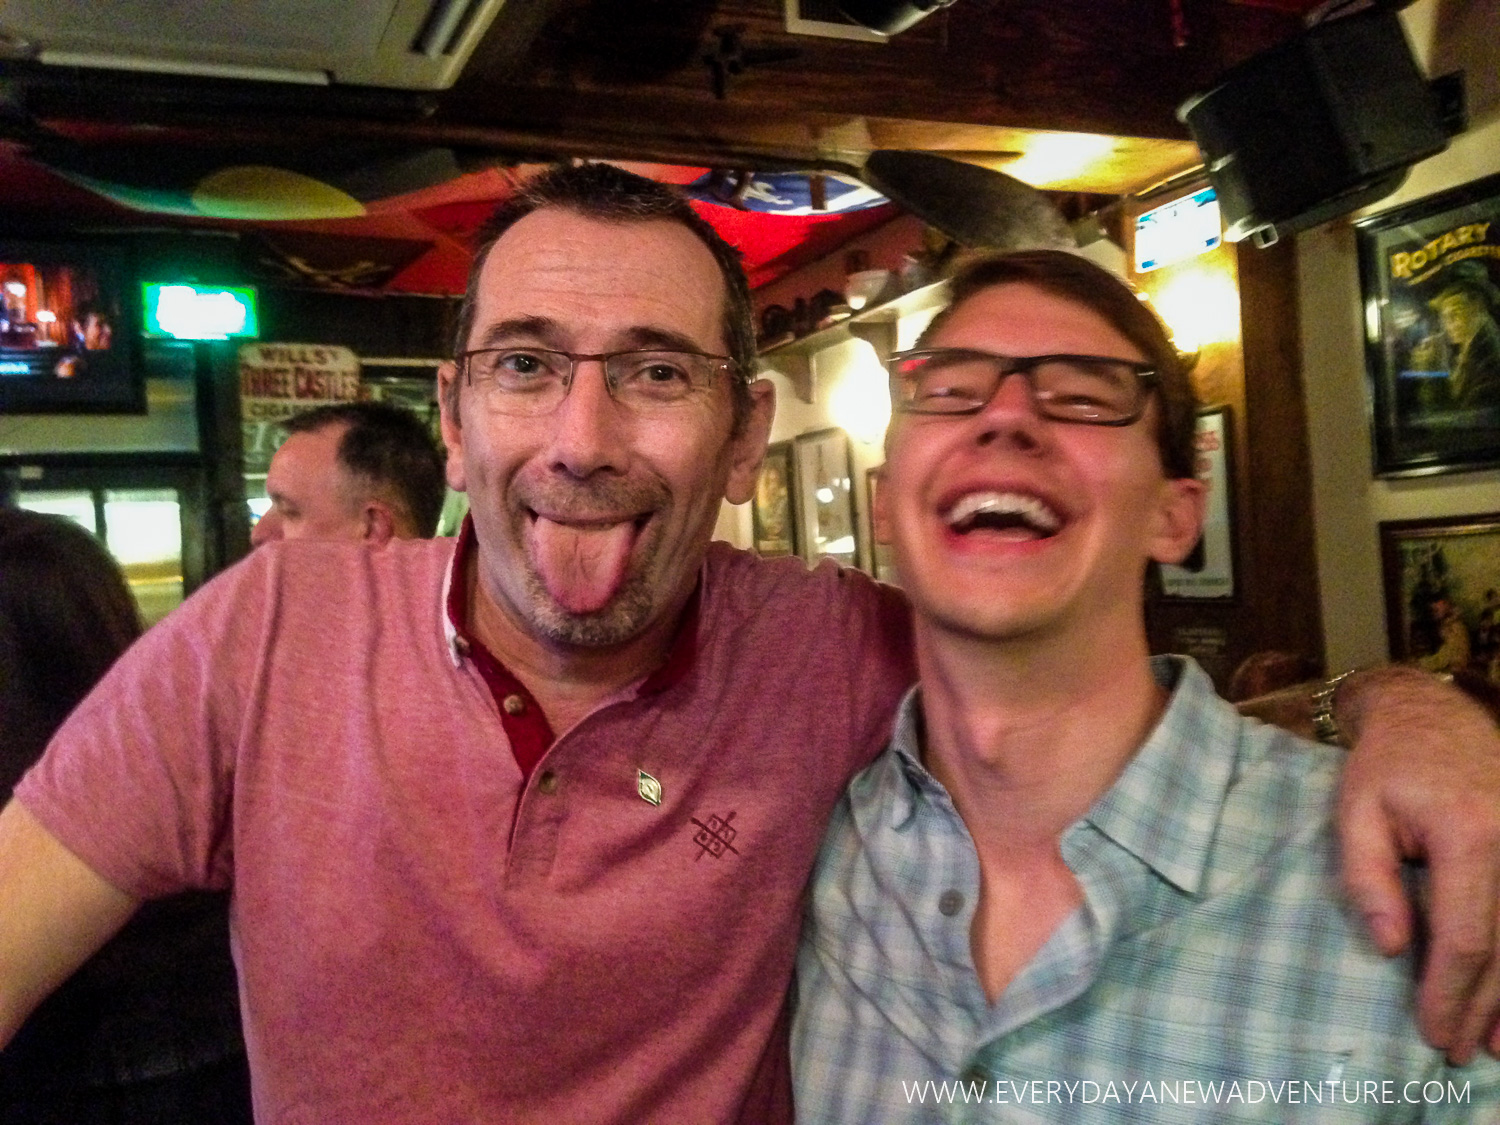 Laughing with our new friend John Meenan at Peadar O'Donnell's in Derry, Northern Ireland.